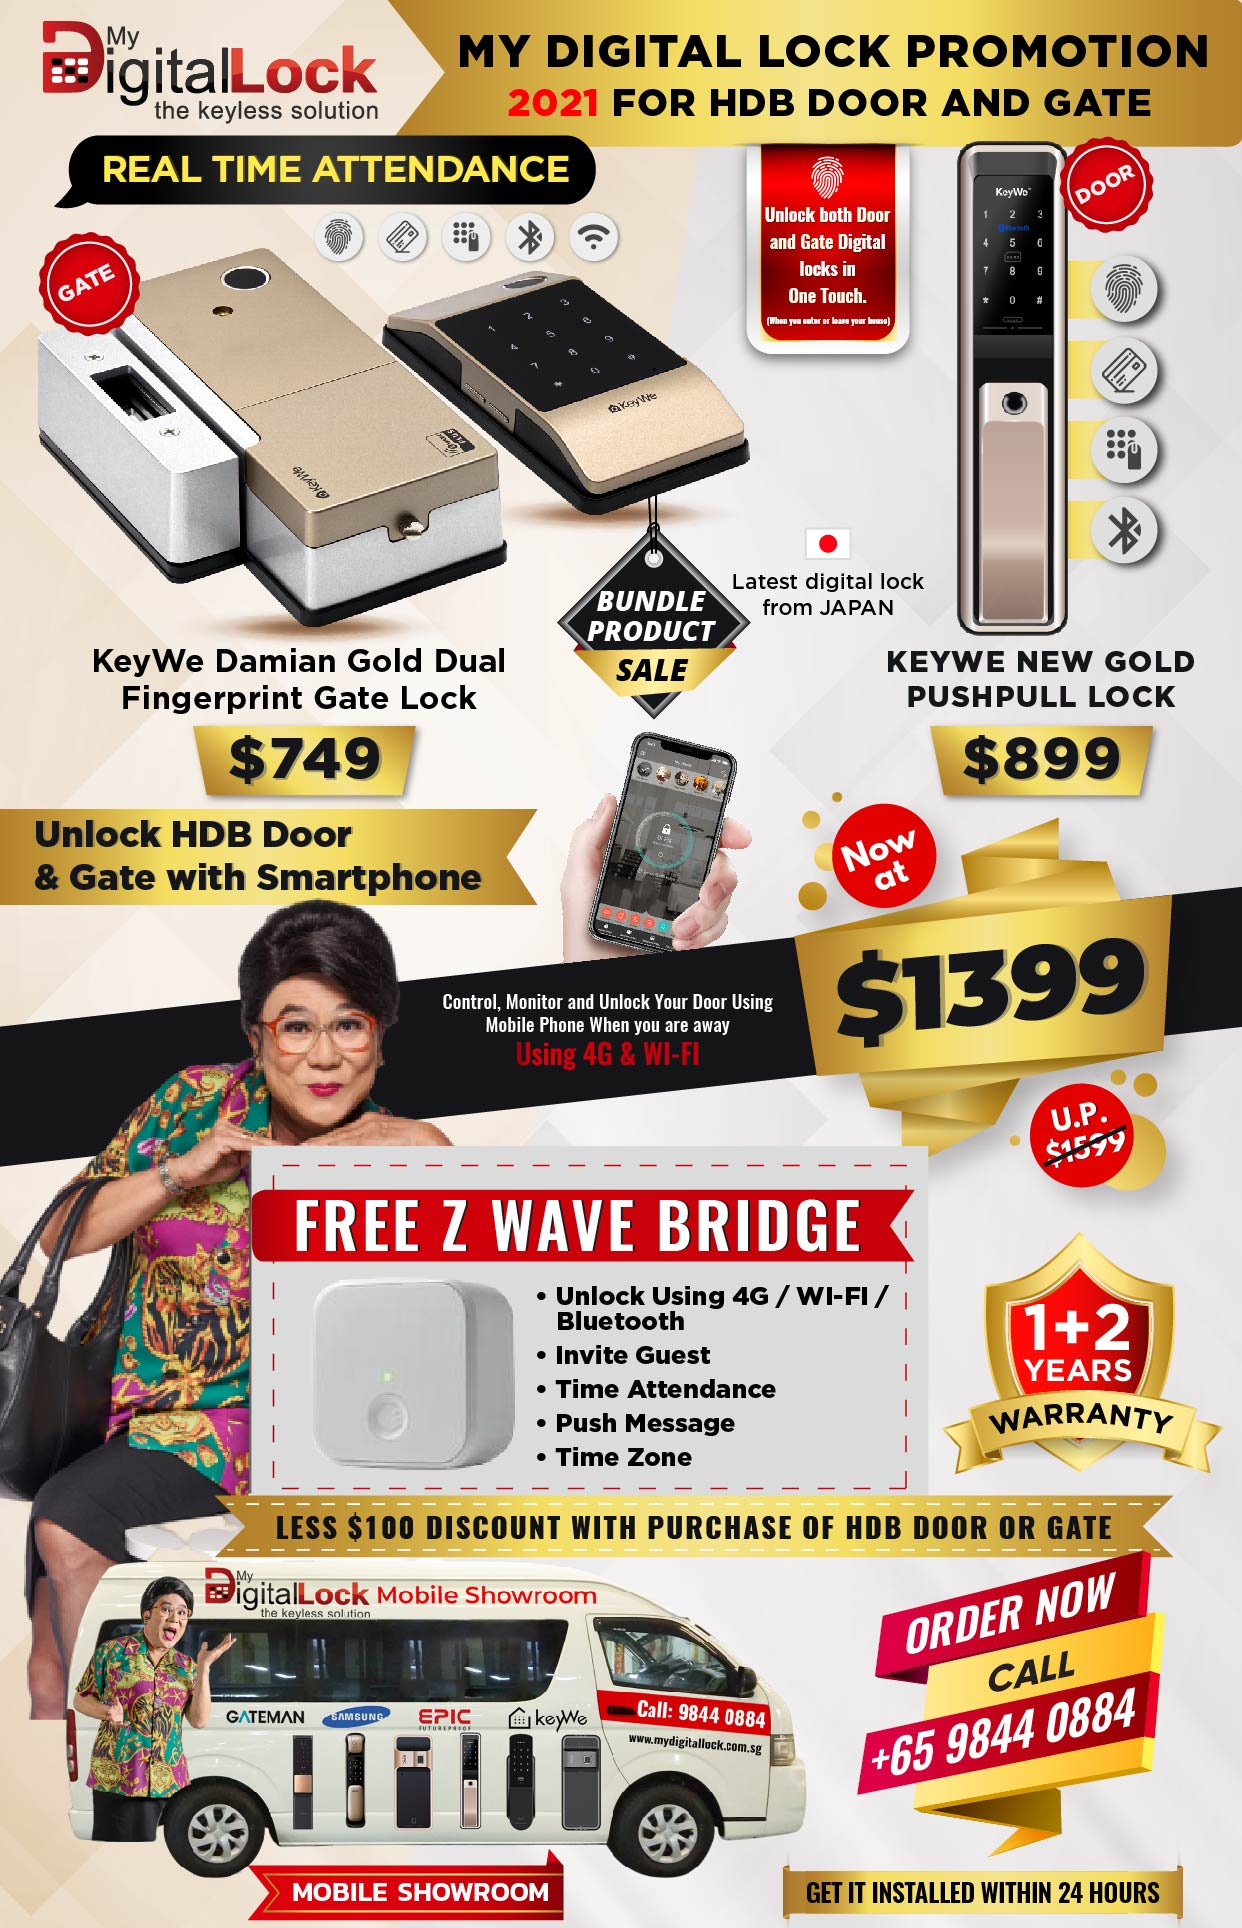 My Digital Lock Promotion for 2021 HDB Door and Gate